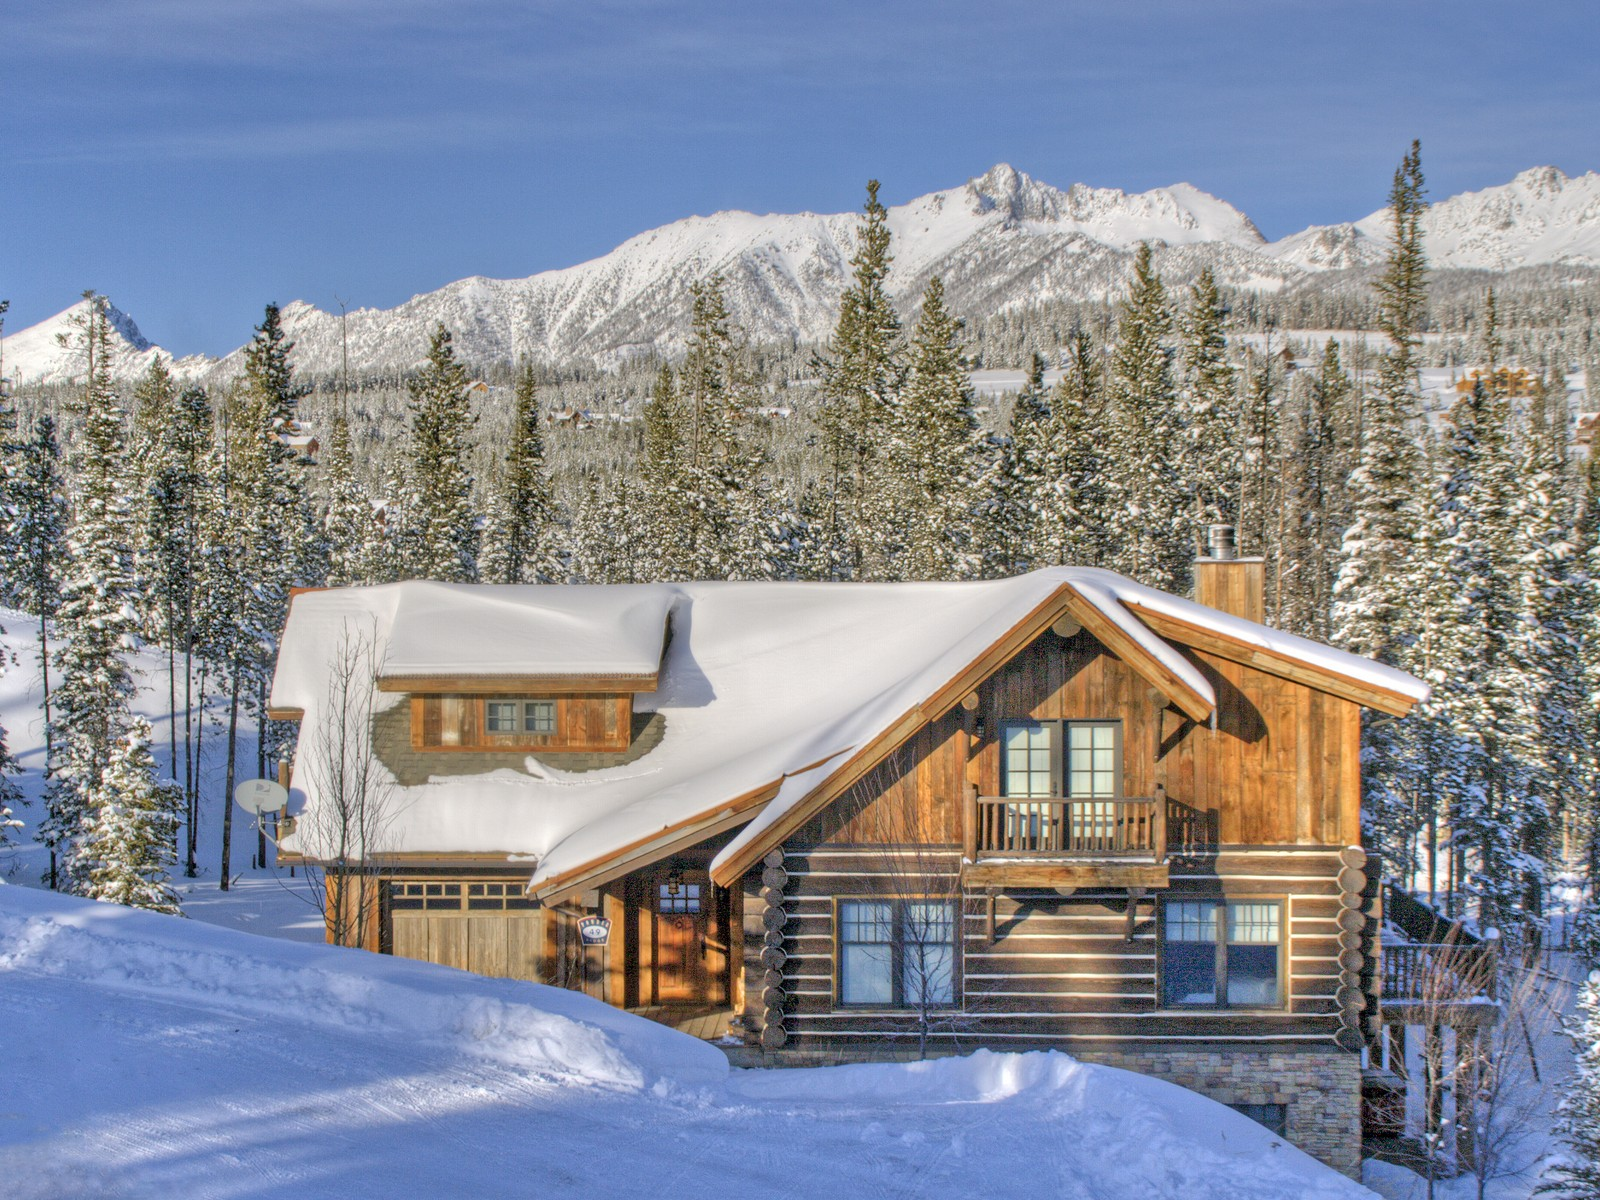 Condominium for Sale at Ski-in, out Powder Ridge Cabin 1 Manitou Loop Big Sky, Montana 59716 United States